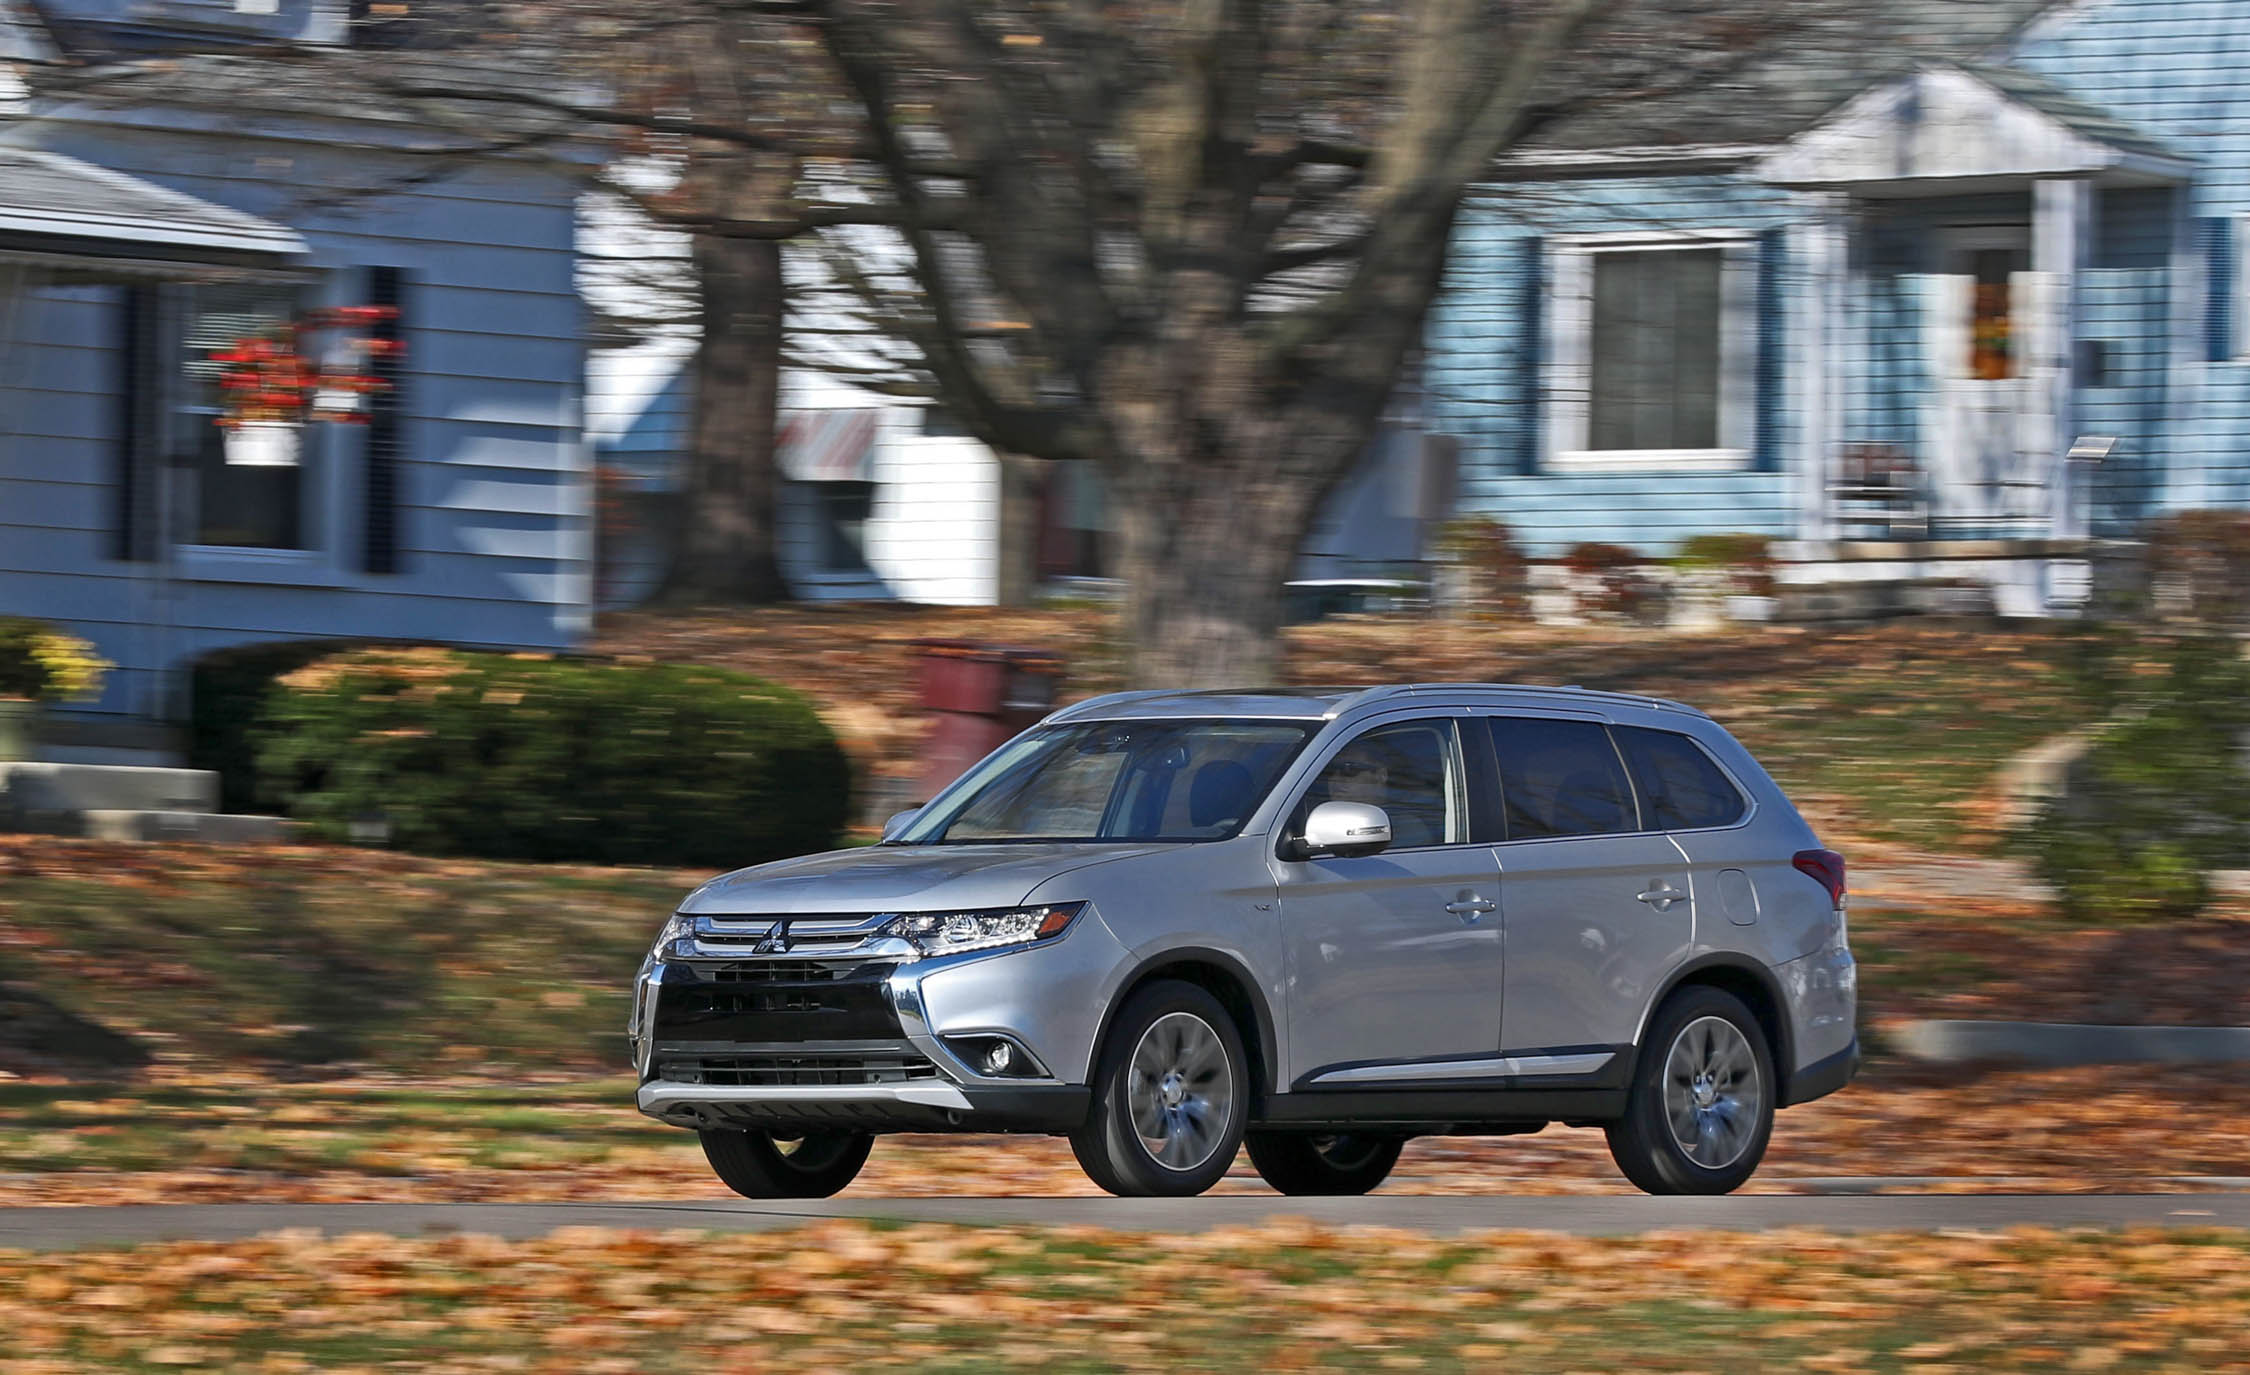 2017 Mitsubishi Outlander Gt Test Drive Silver Metallic (View 6 of 34)